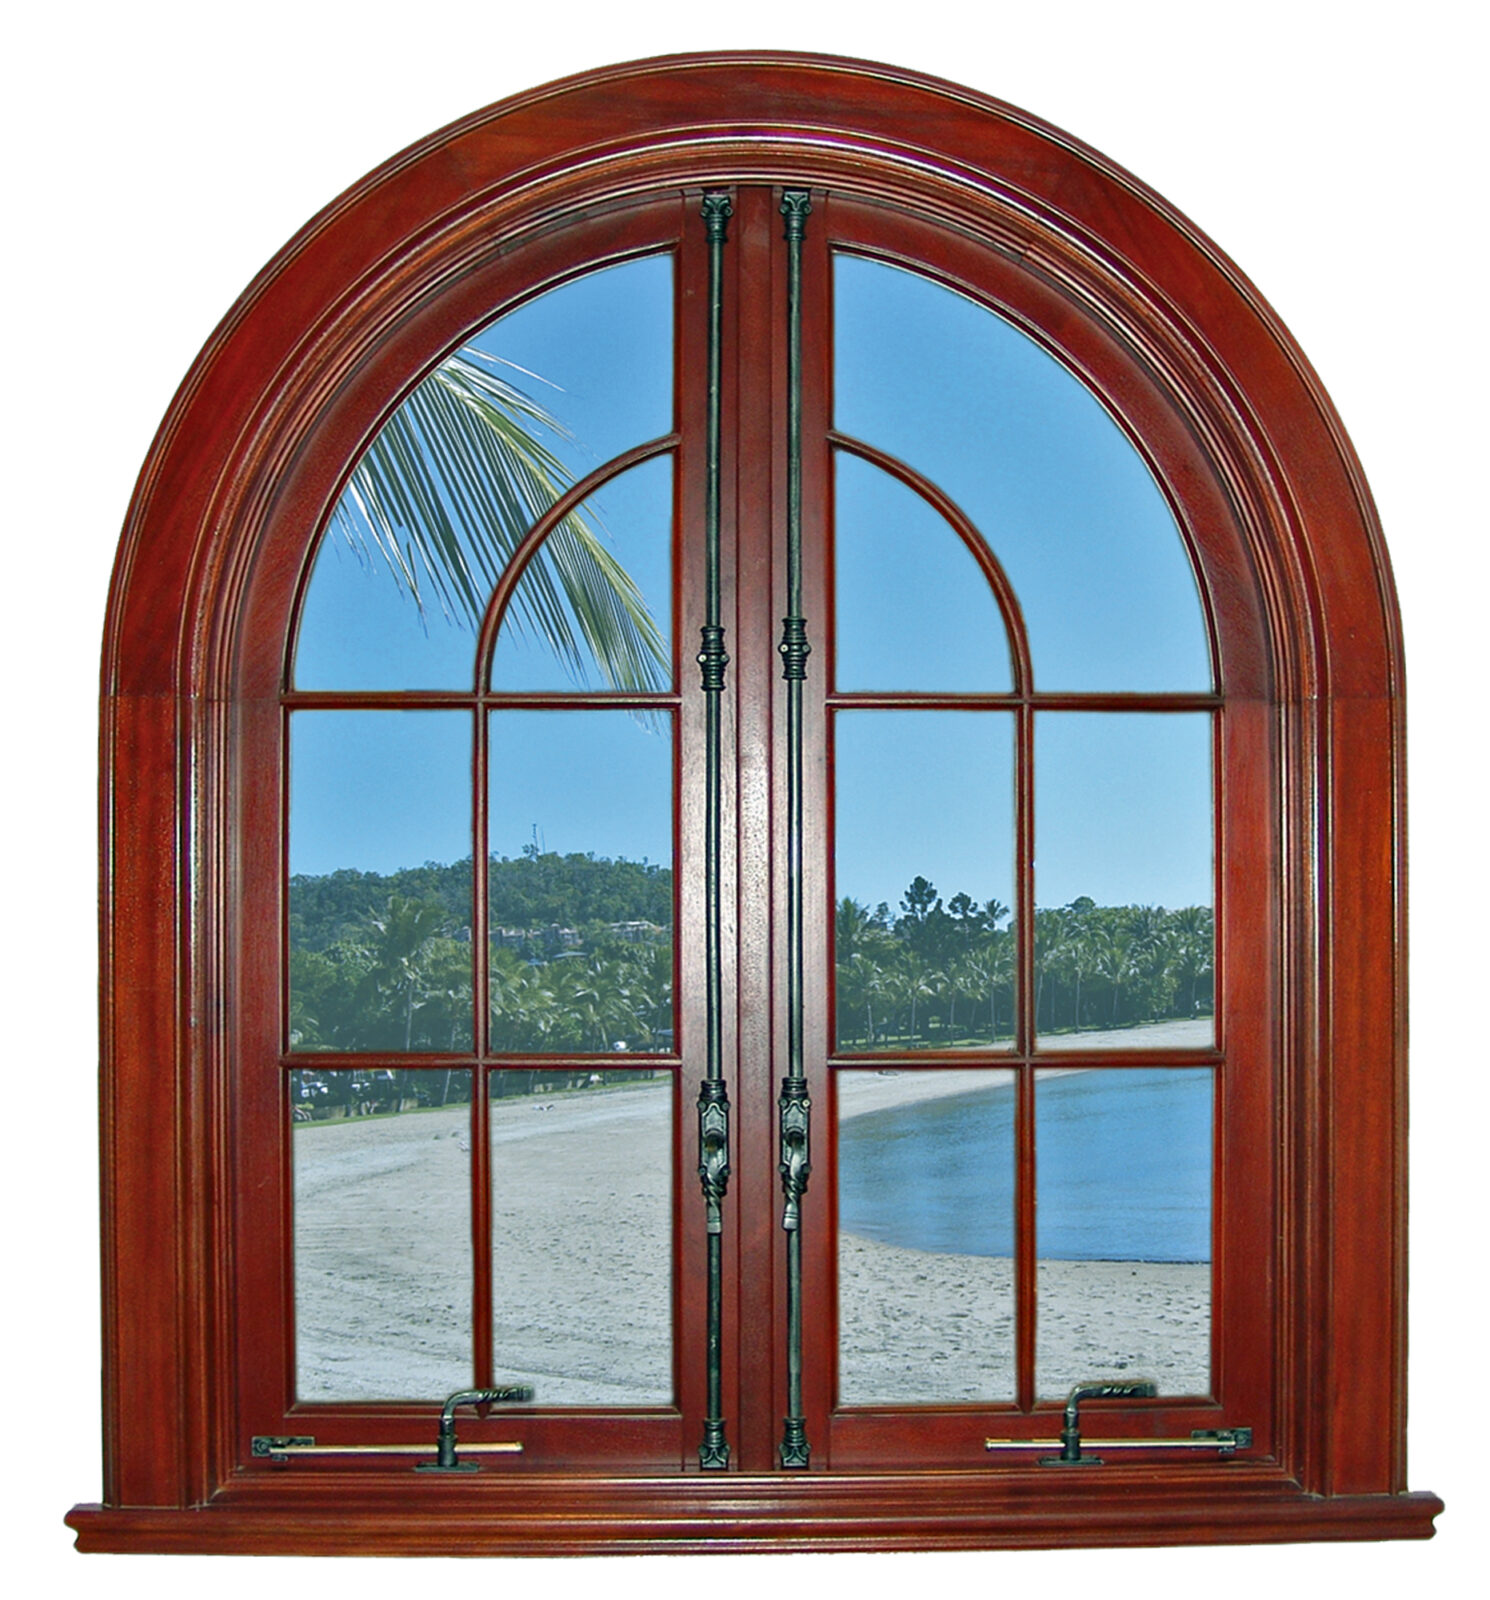 DAVINCI ARCHED MAHOGANY WINDOWS